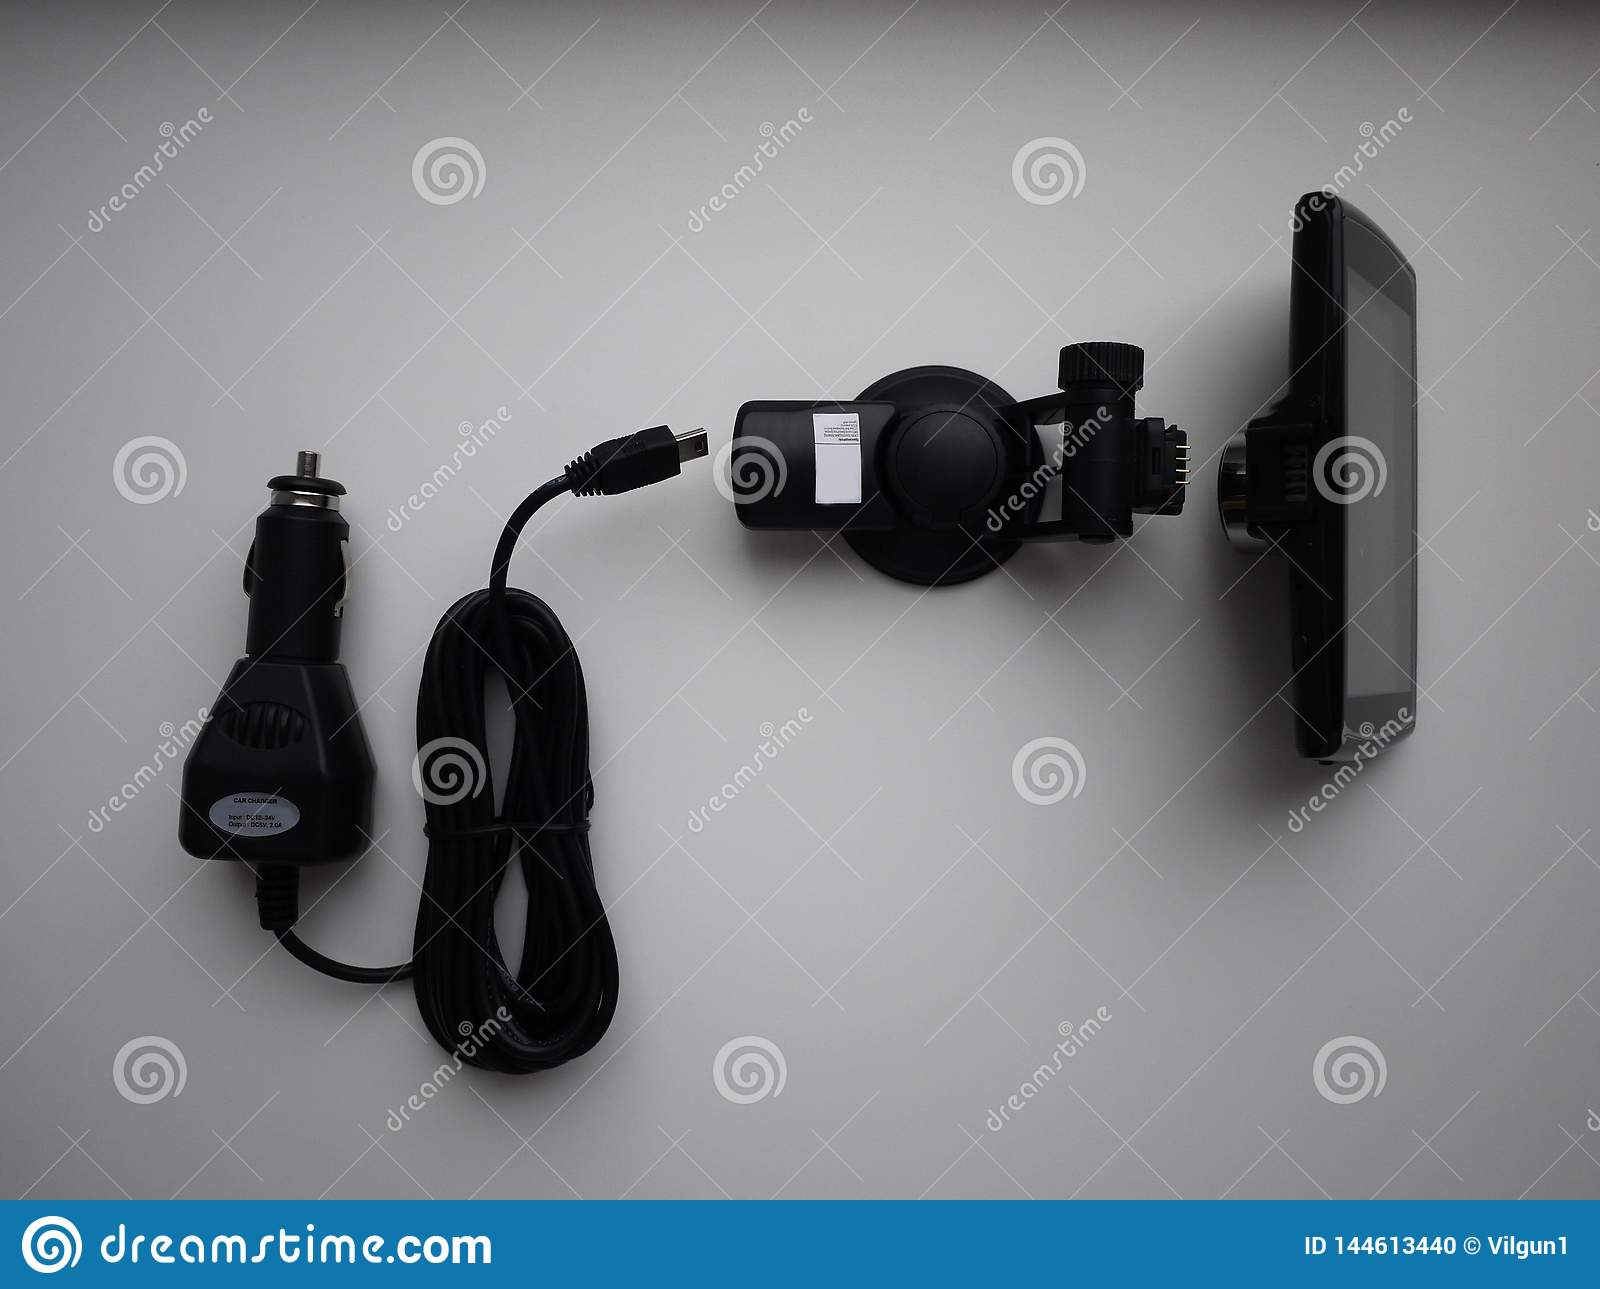 Video recorder for the car. Used to record what is happening on the road. Installed on the windshield. and